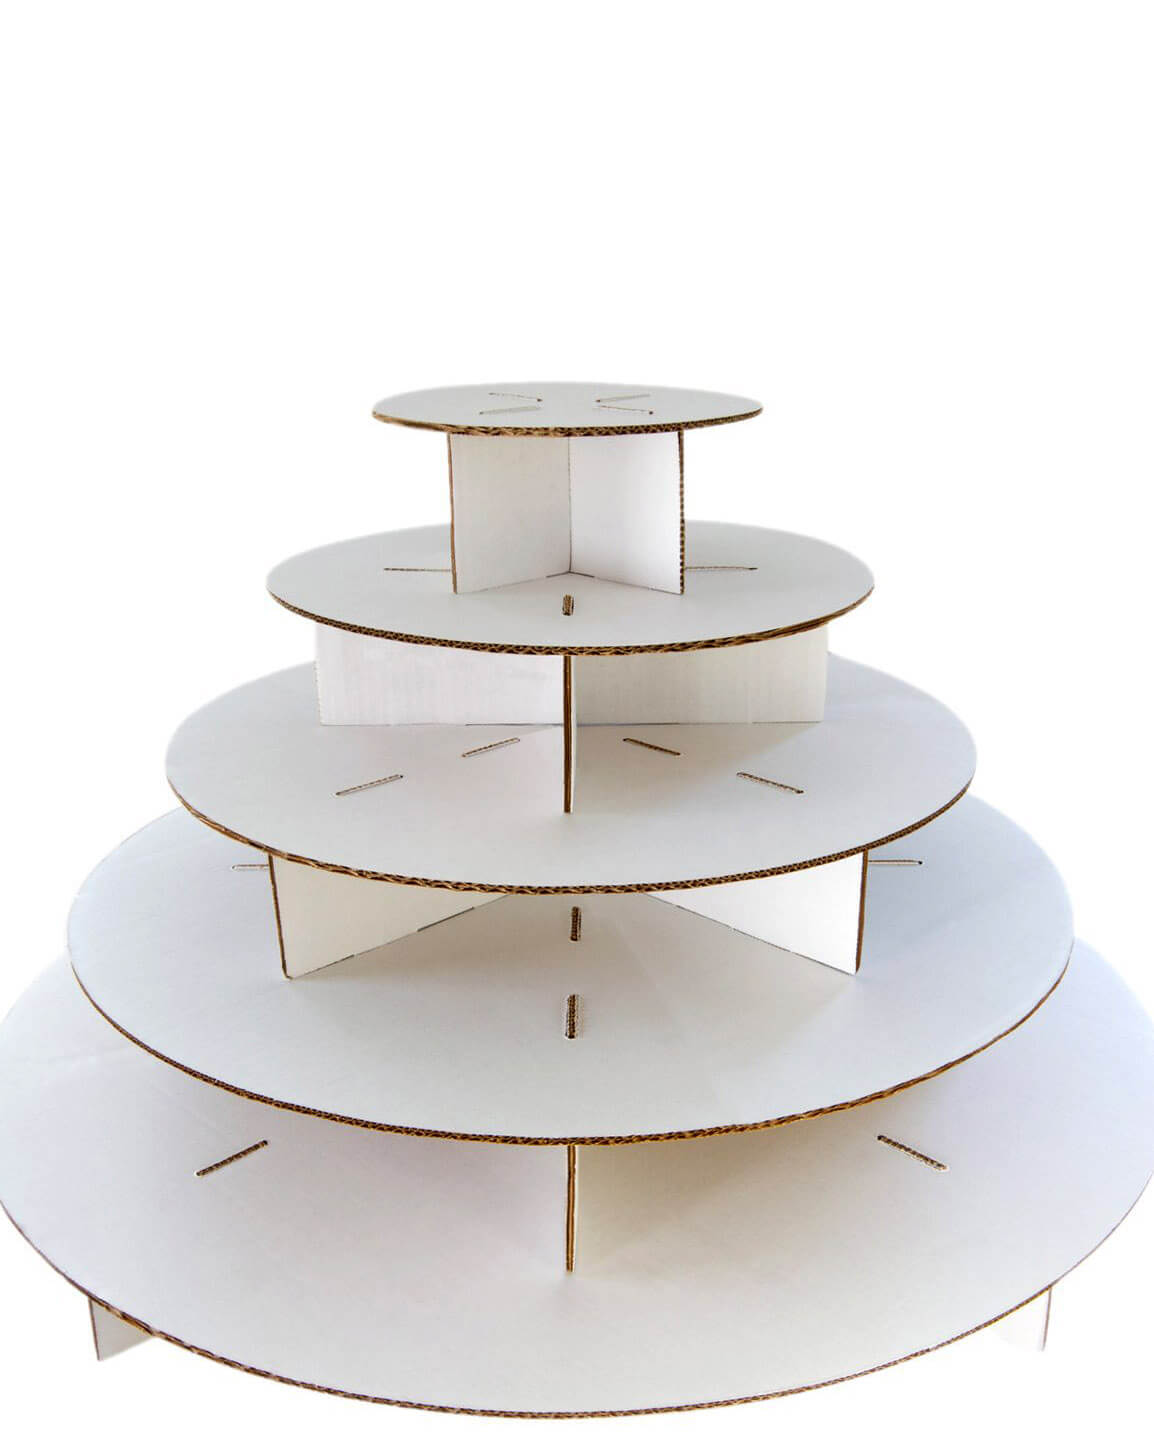 How To Make A Cake Stand From Cardboard